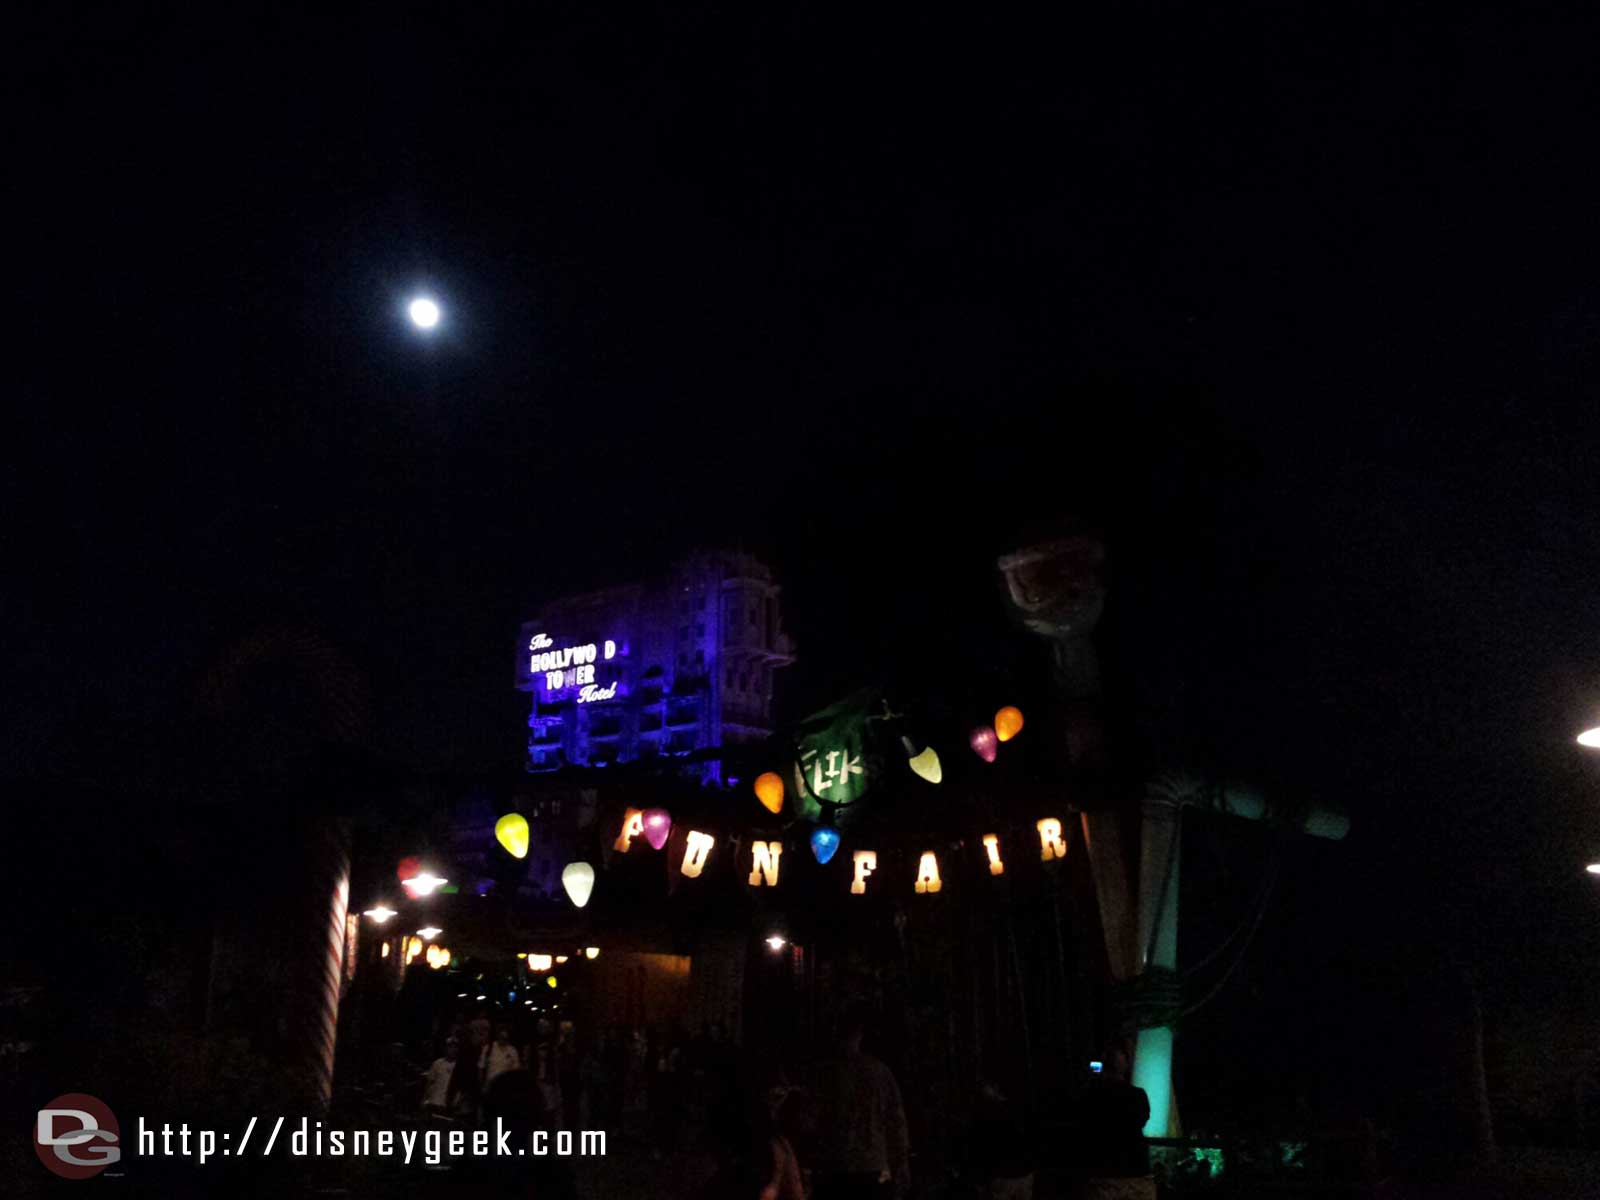 The entrance to Flik's Fun Fair with Christmas decorations and a full moon too